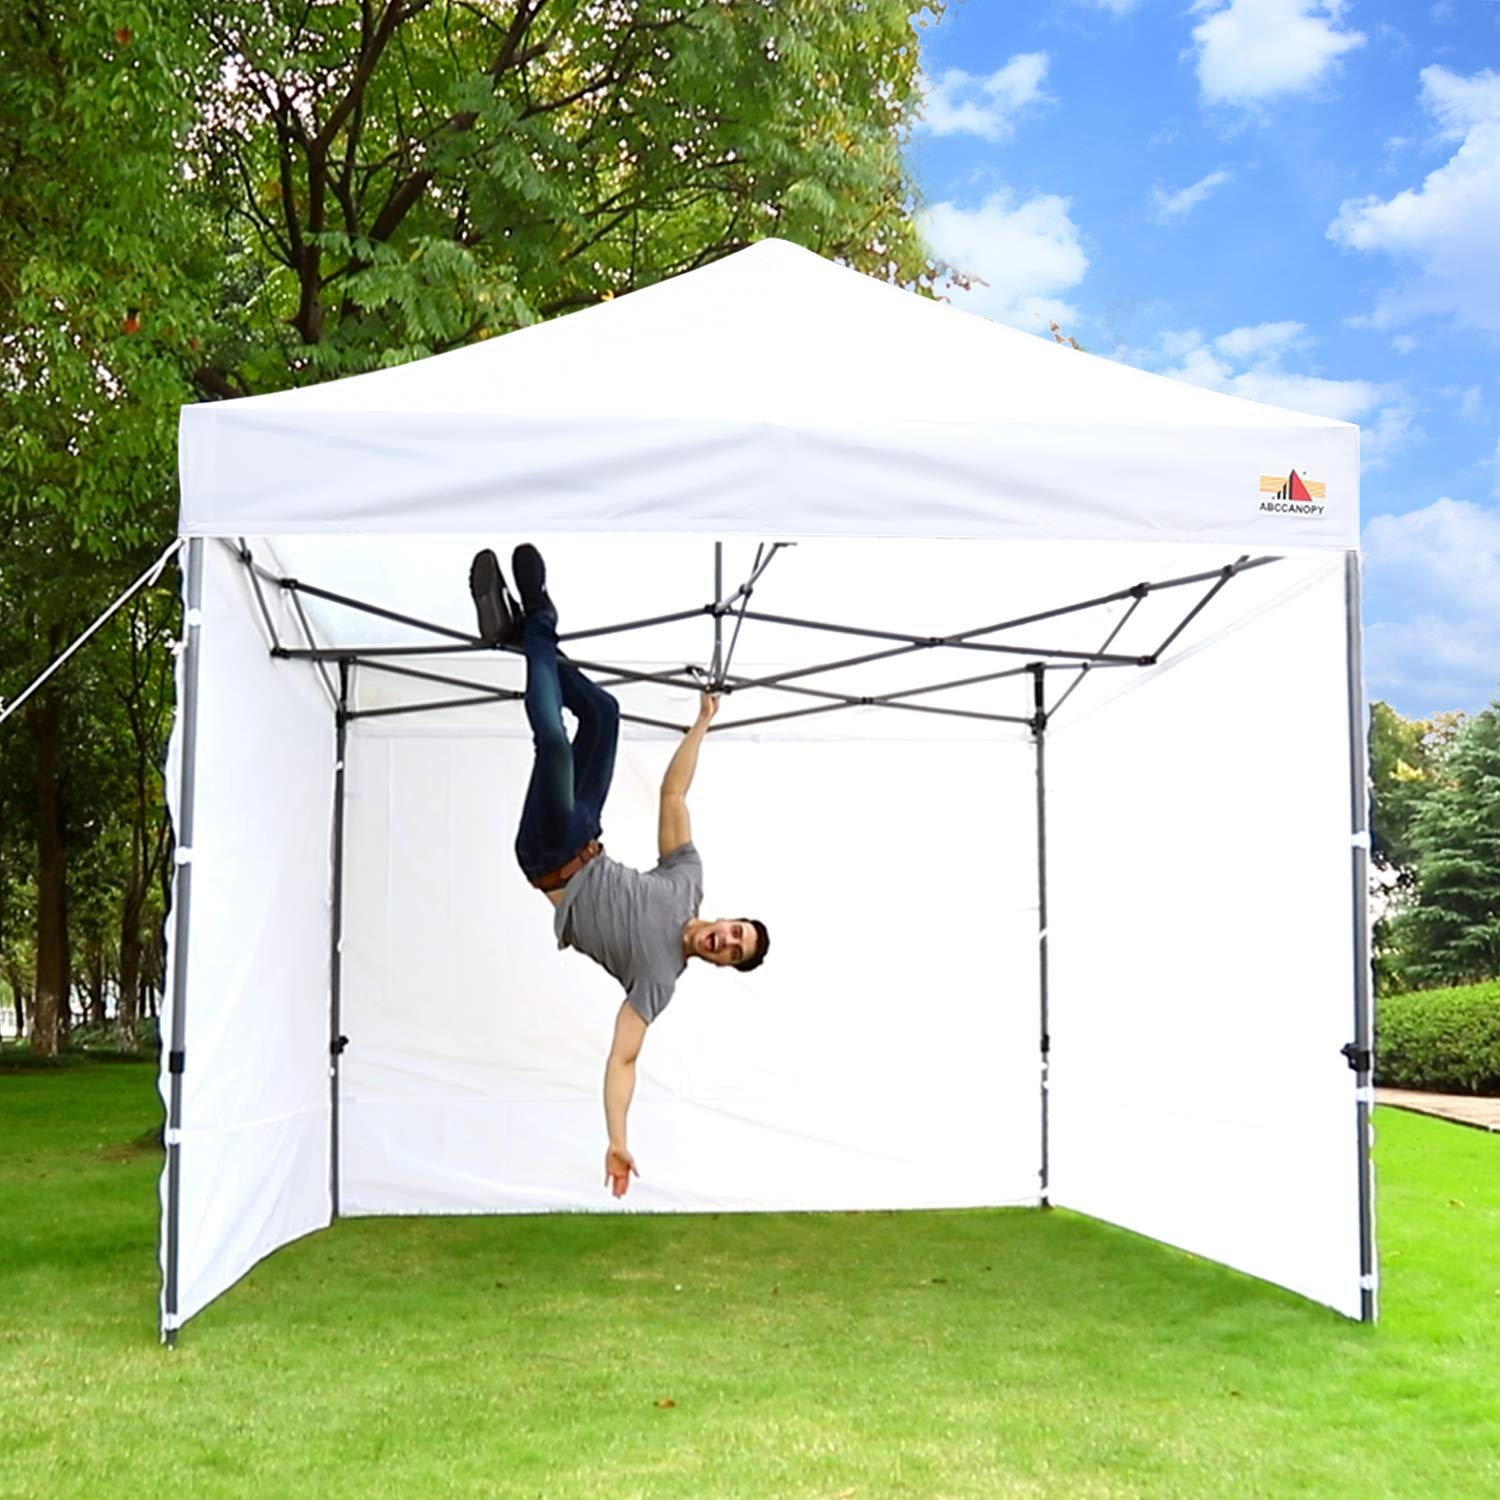 ABCCANOPY 10 x 10 Ez Pop-up Canopy Tent Commercial Instant Tents Market stall